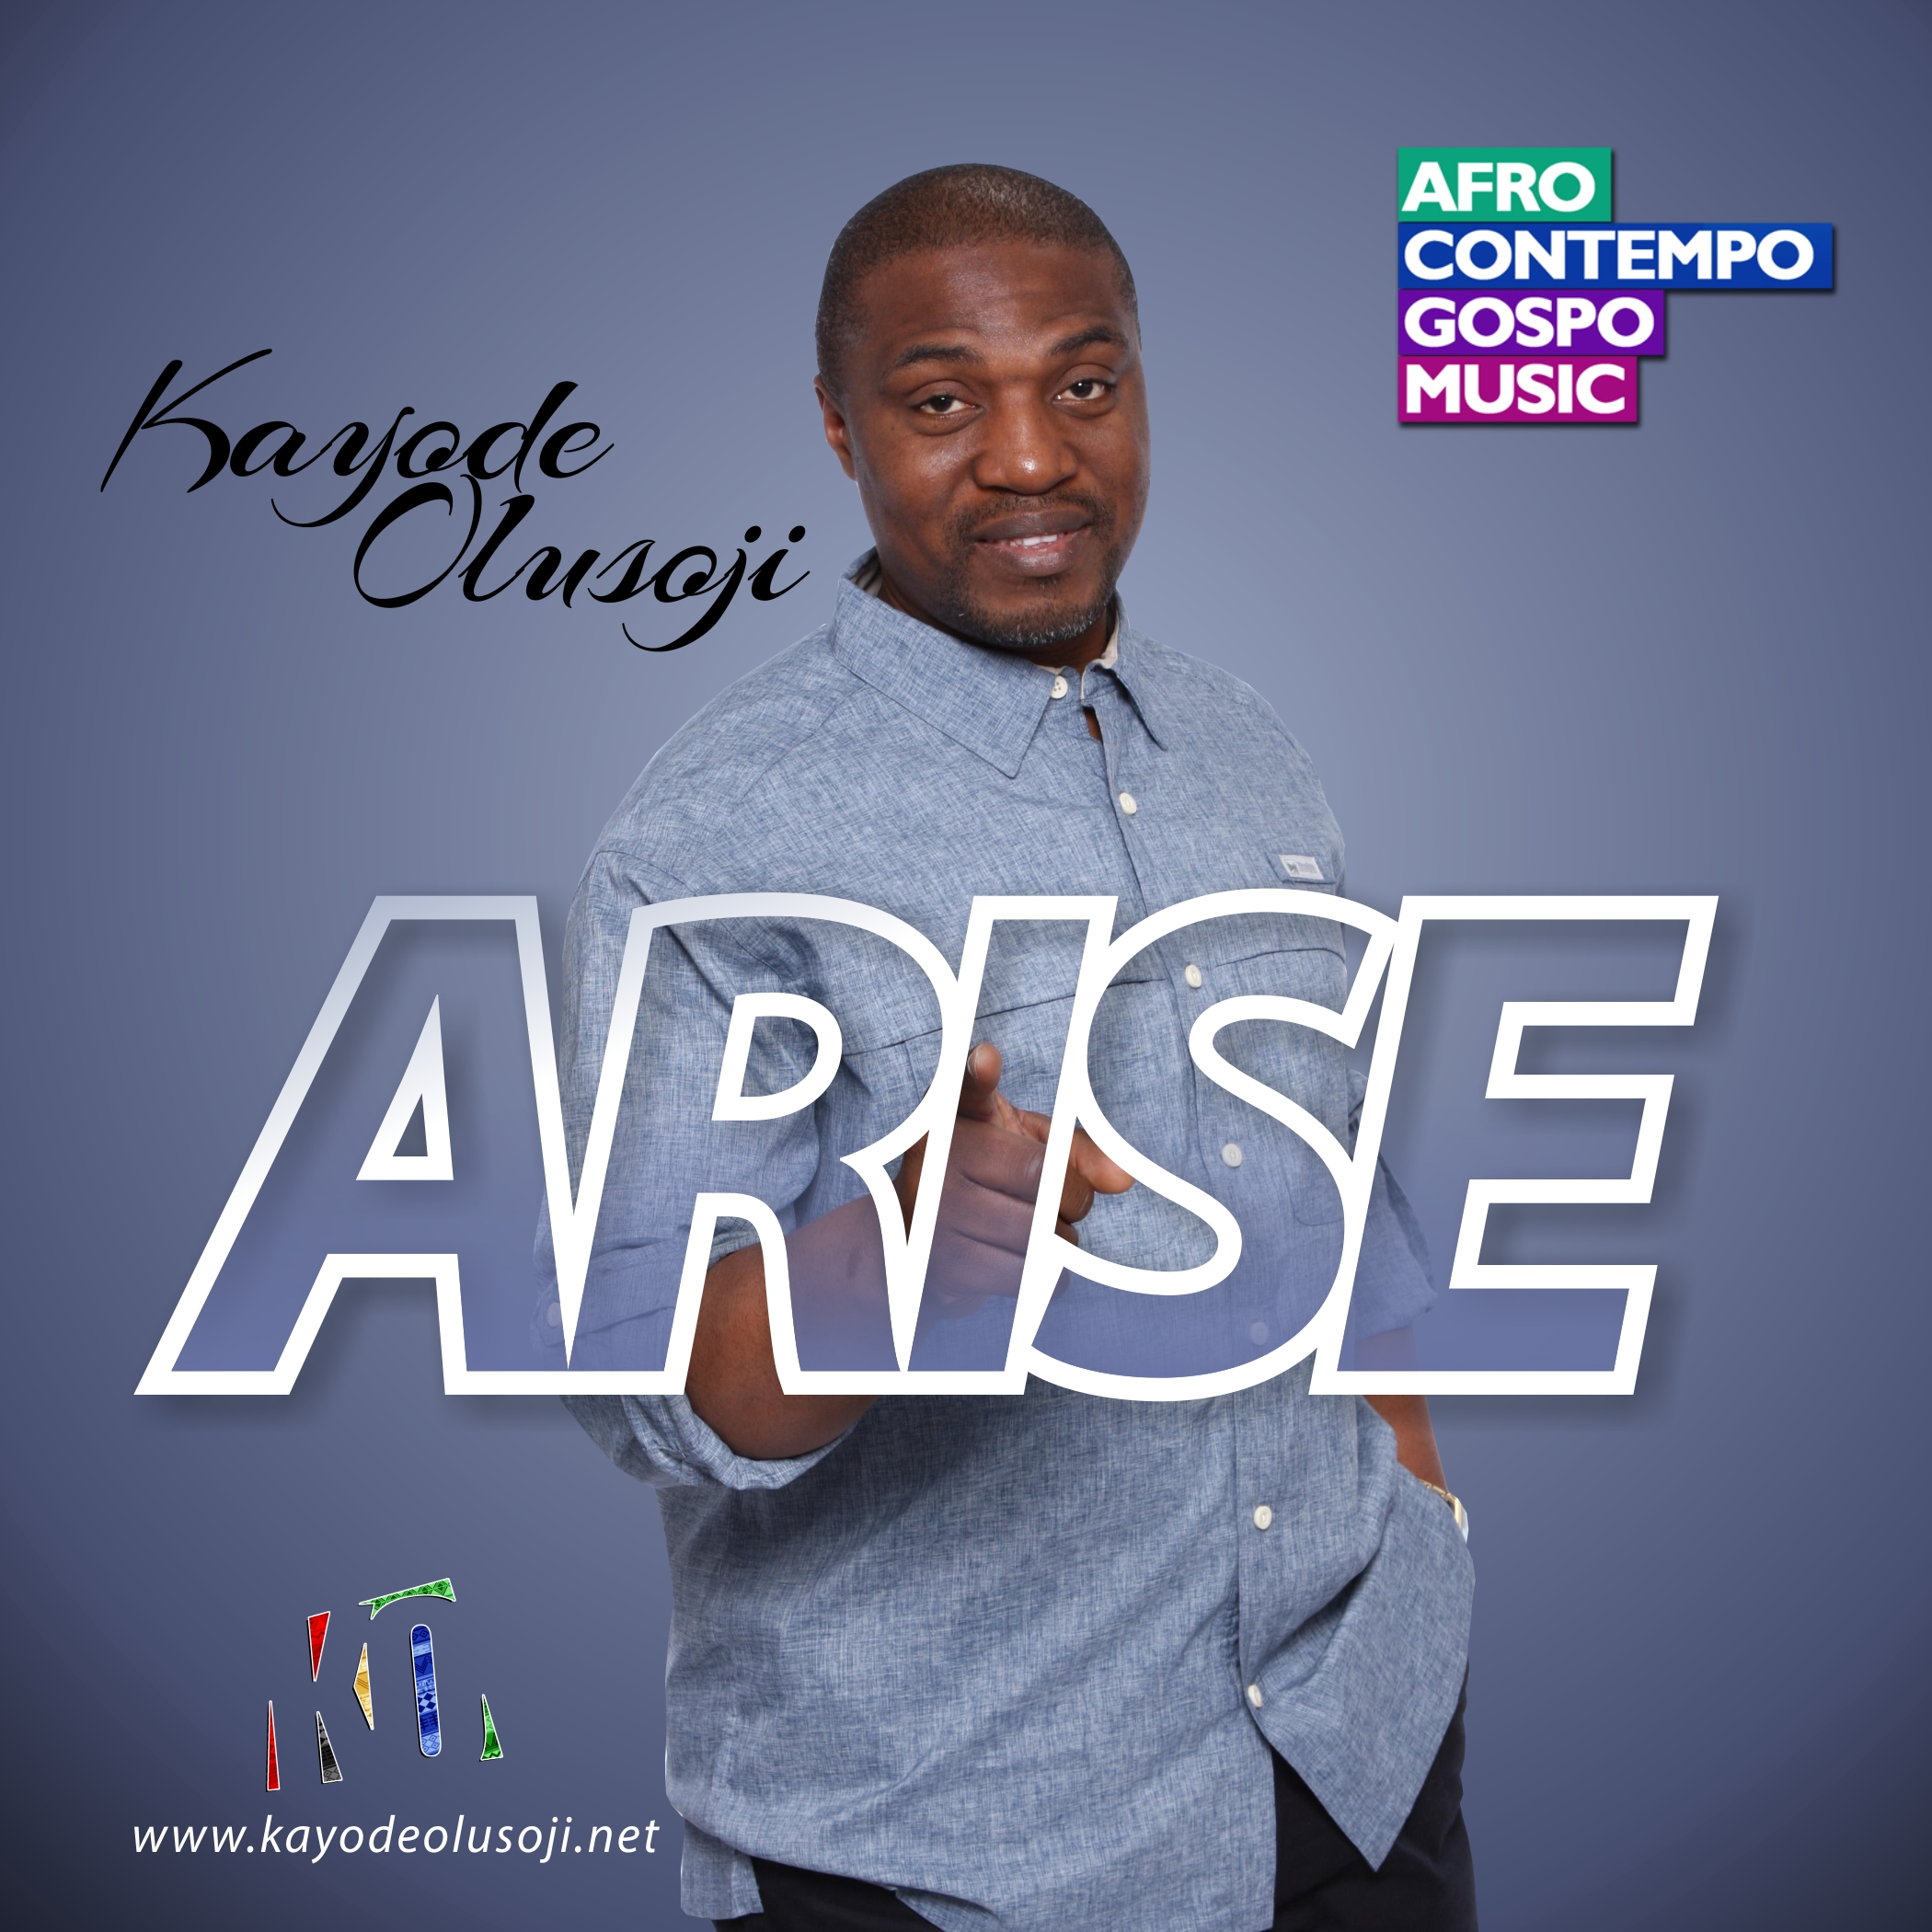 Lyrics Video: Arise ~ Kayode Olusoji [@Kayode_Olusoji]